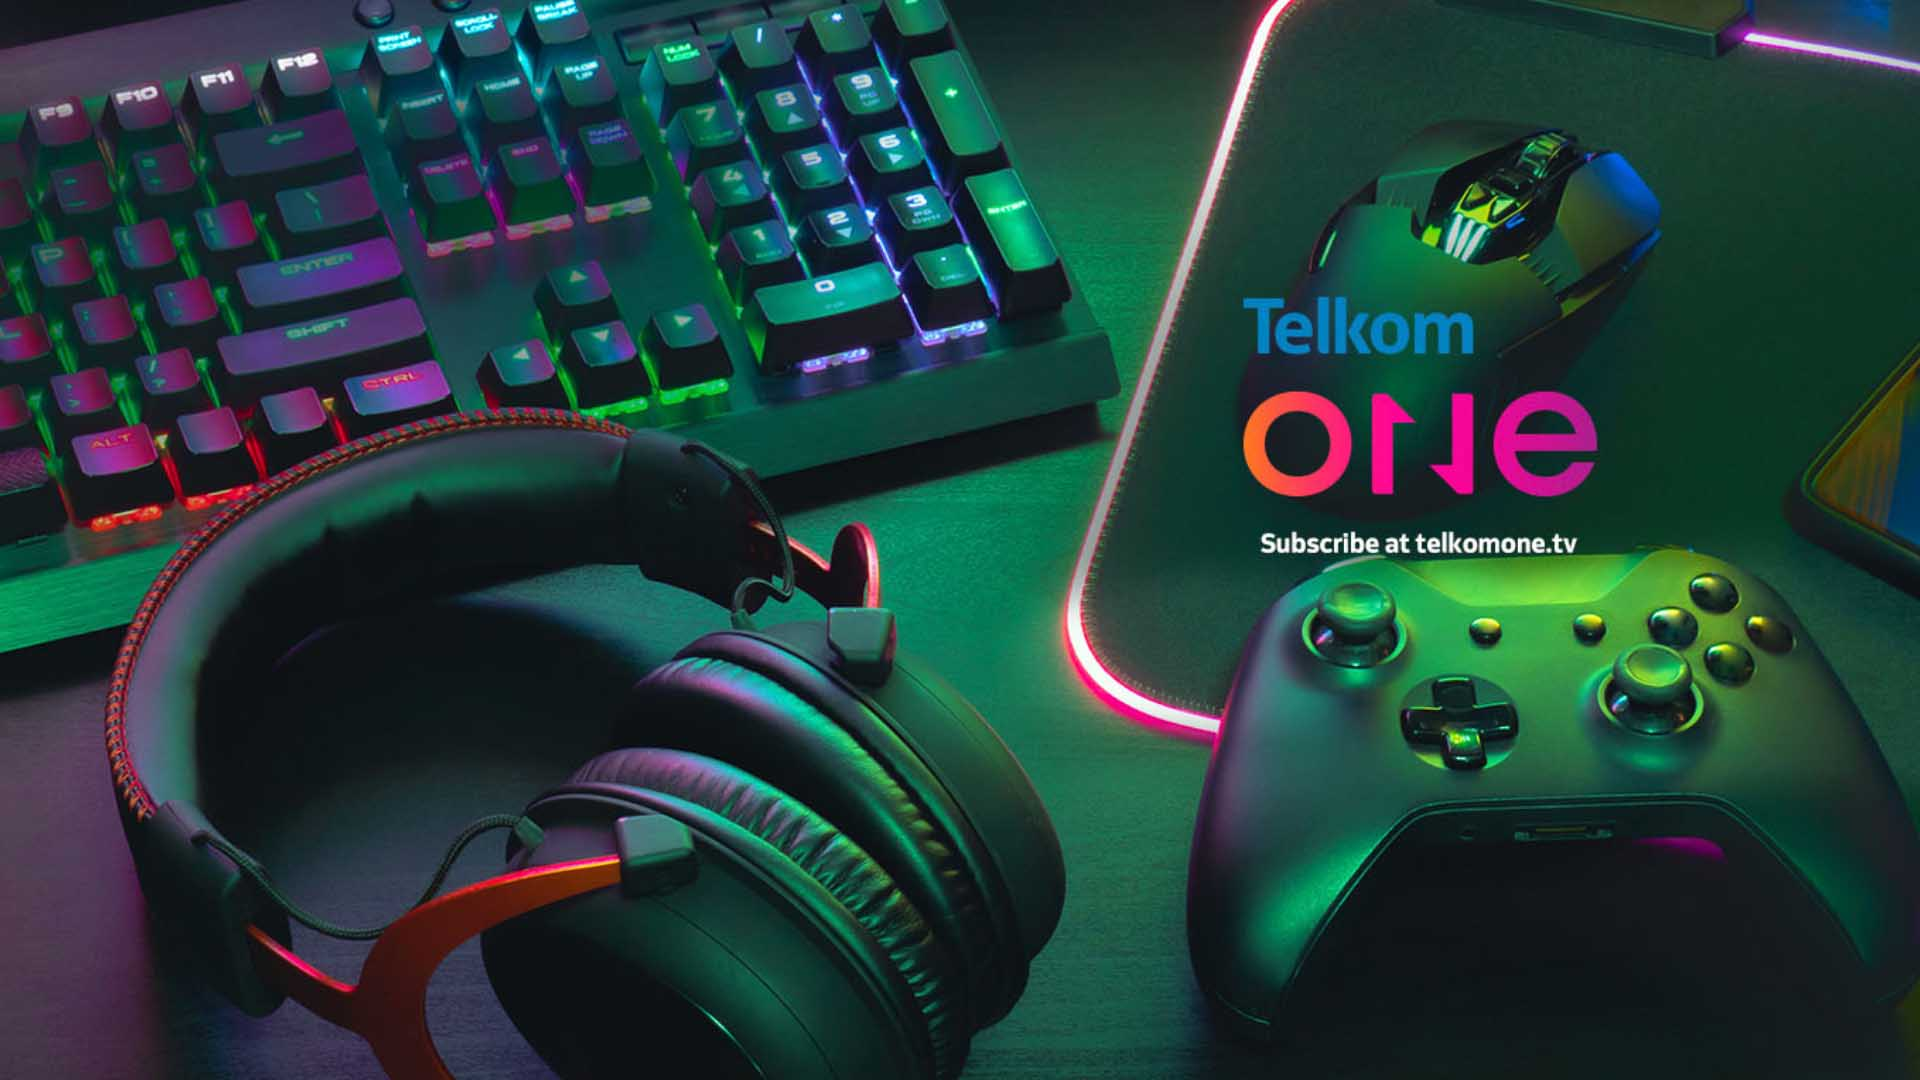 "<h1 style=""color: white;""><strong>Calling all aspiring gaming gurus #OpenUpTheGames</strong></h1>"